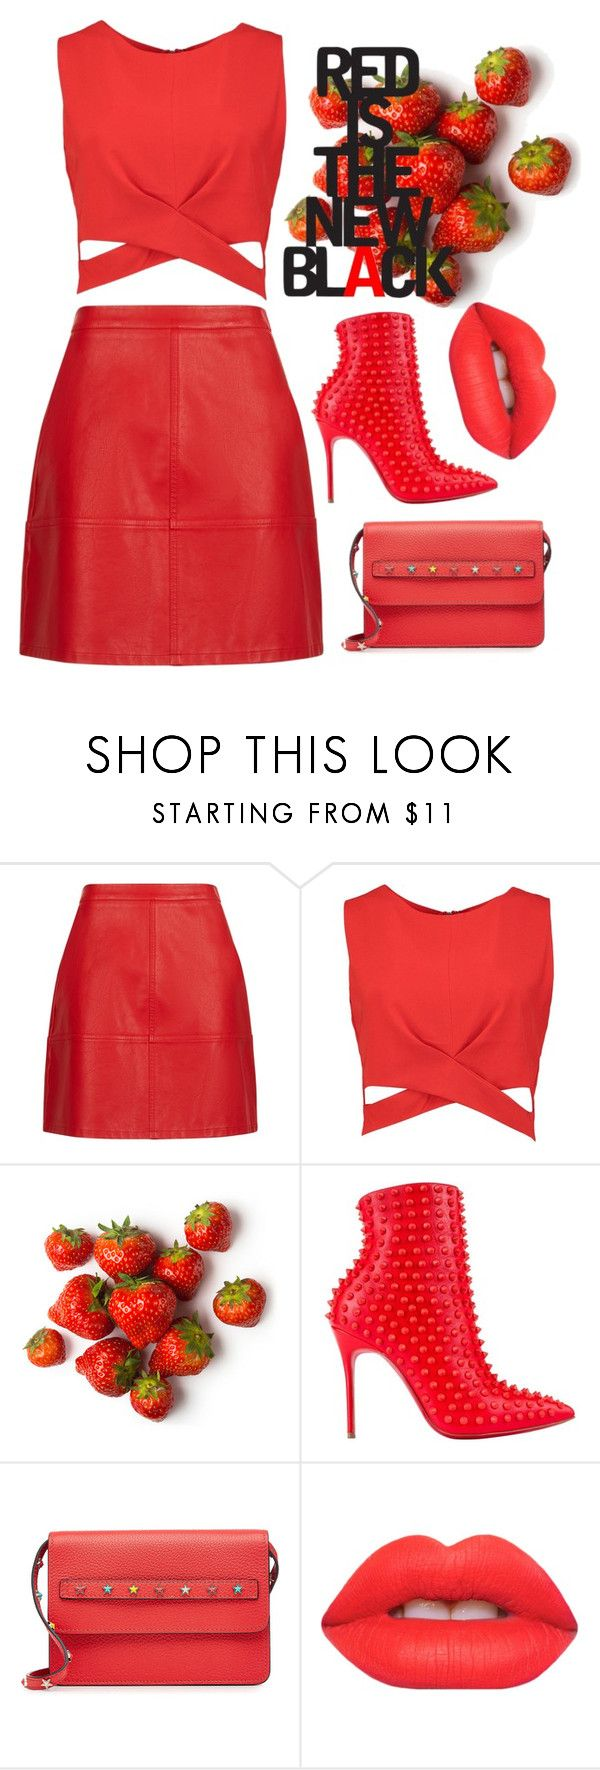 """red is the new black"" by ashaedey ❤ liked on Polyvore featuring Boohoo, Christian Louboutin, RED Valentino, Lime Crime, monochrome, contest and red"